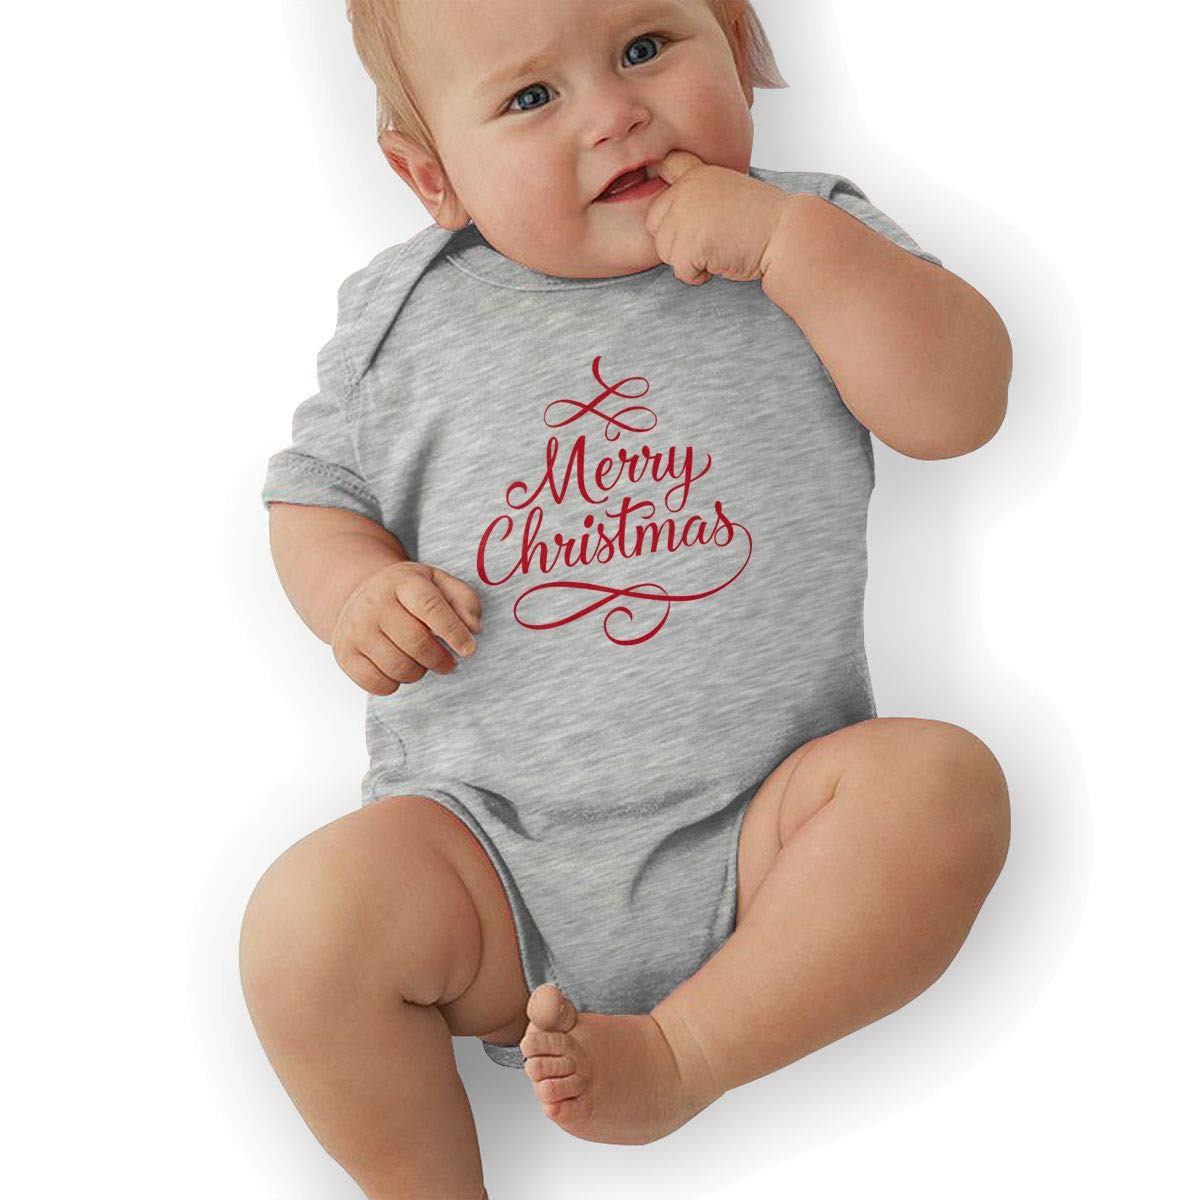 Toddler Baby Boys Bodysuit Short-Sleeve Onesie Merry Christmas Print Outfit Winter Pajamas